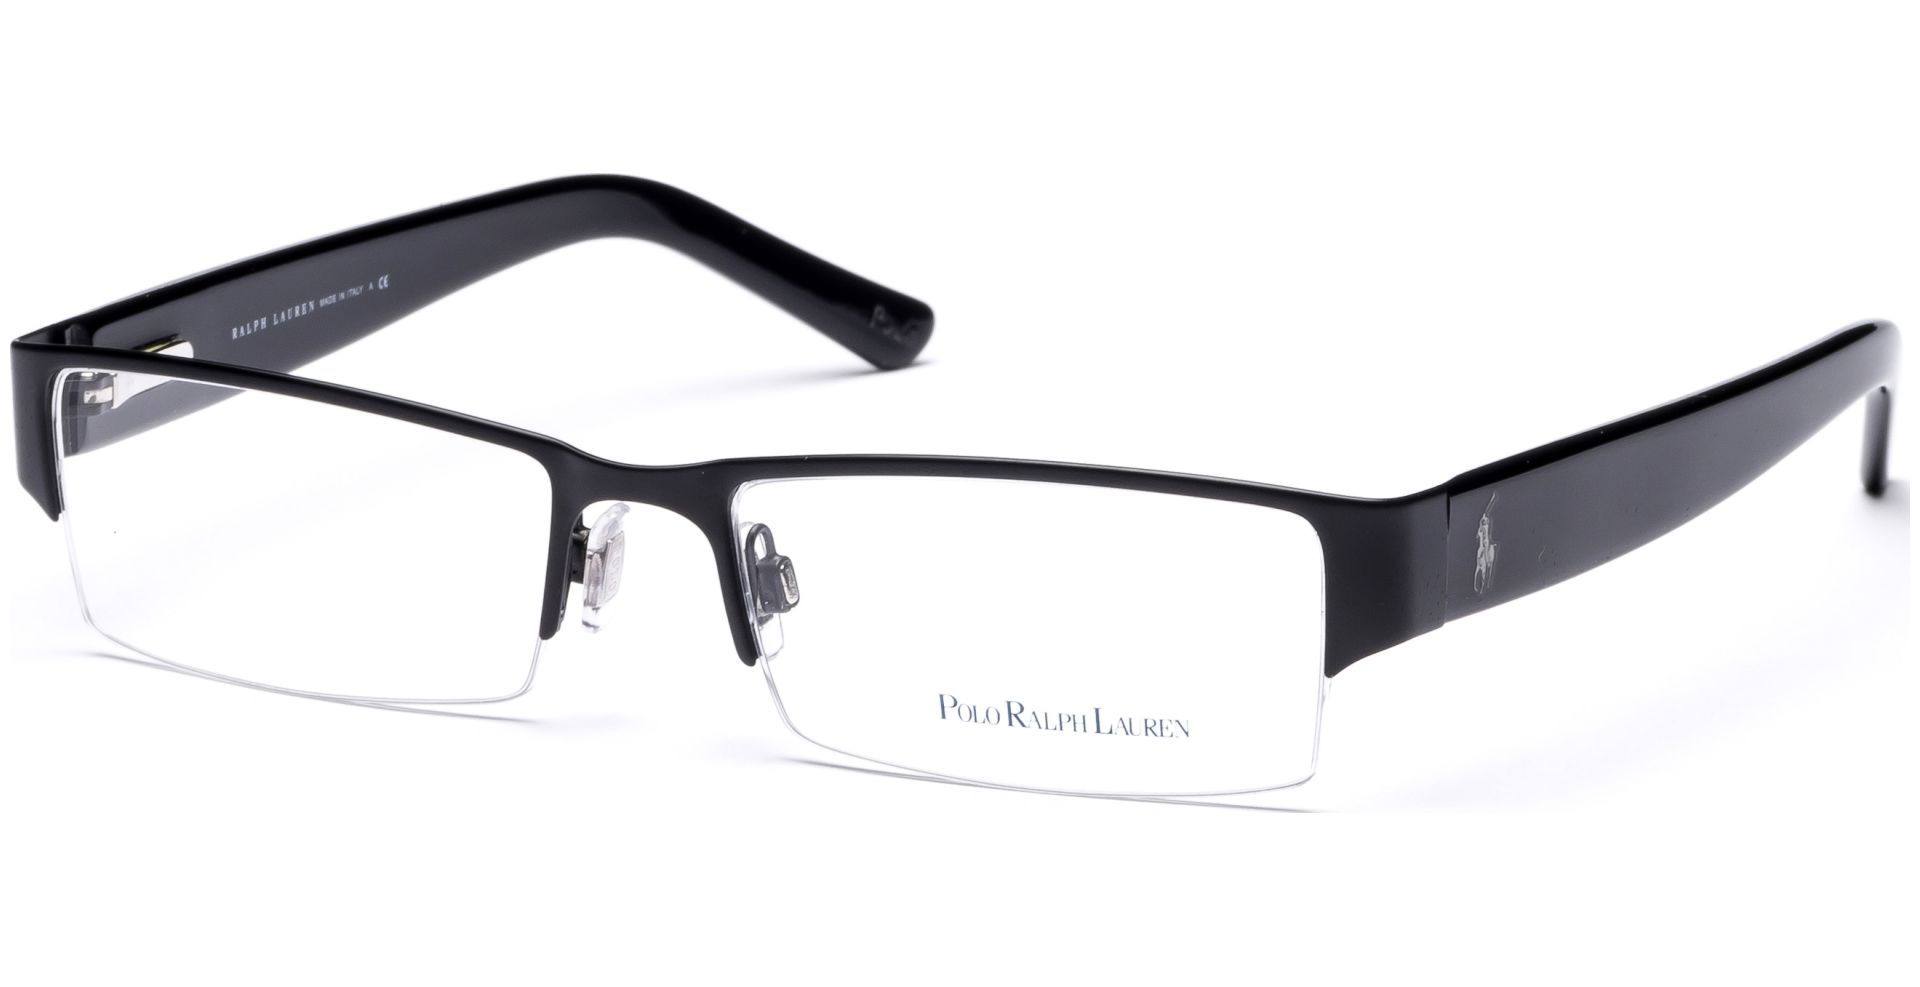 Polo - Ralph Lauren - PH1067 9038 5217 Small Matte Black - von Lensbest